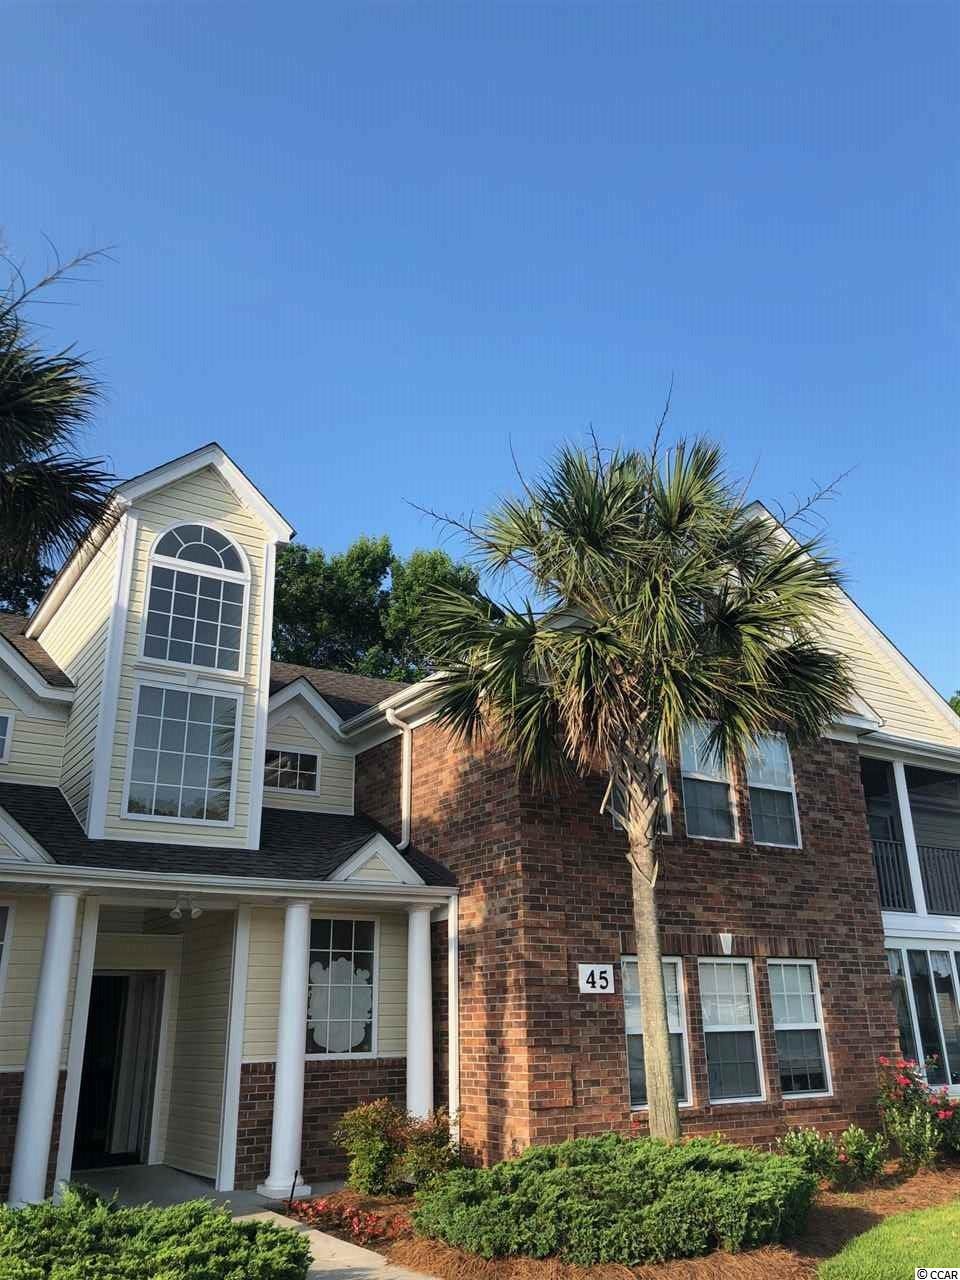 Condo MLS:1813100 STERLING POINTE - MURRELLS INLET  45 Woodhaven Drive Murrells Inlet SC